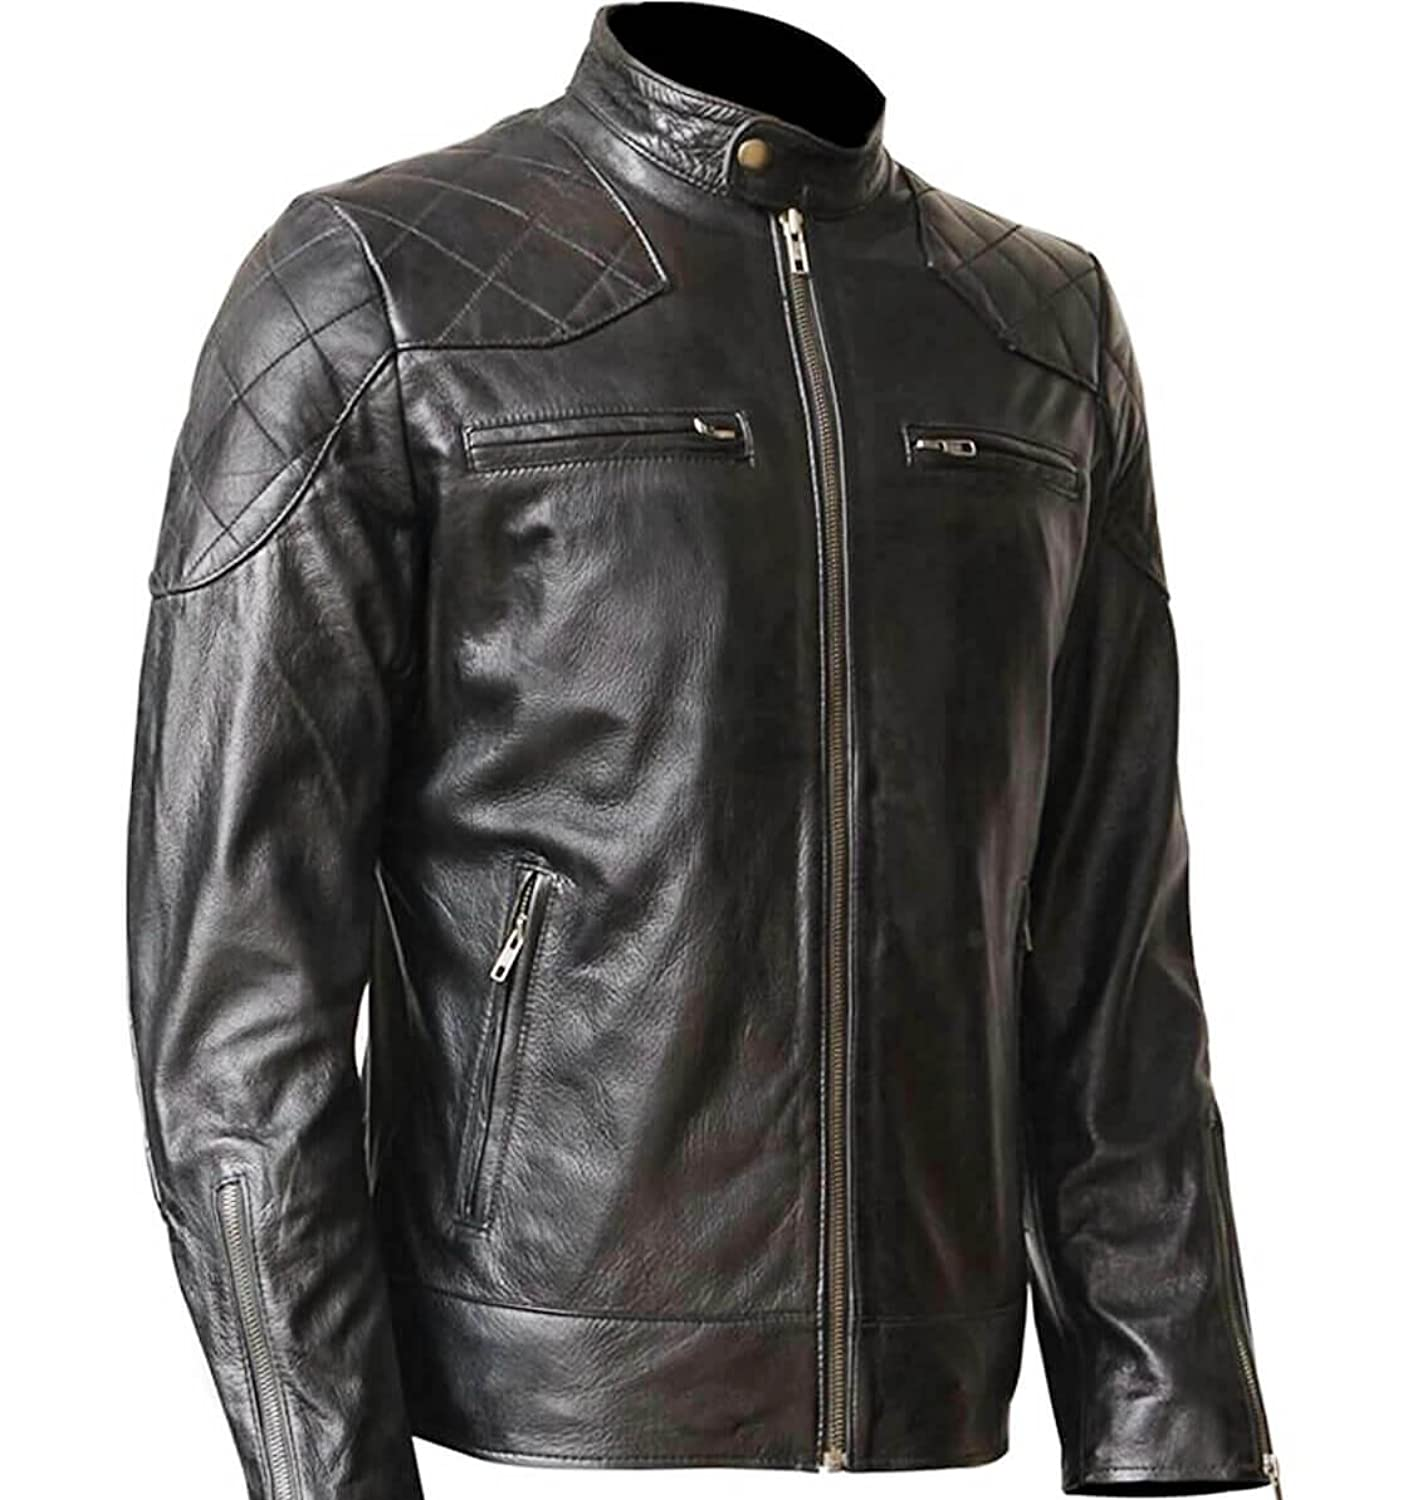 34606123a3191b Top 10 wholesale Leather Jacket With Zippers On Sleeves ...